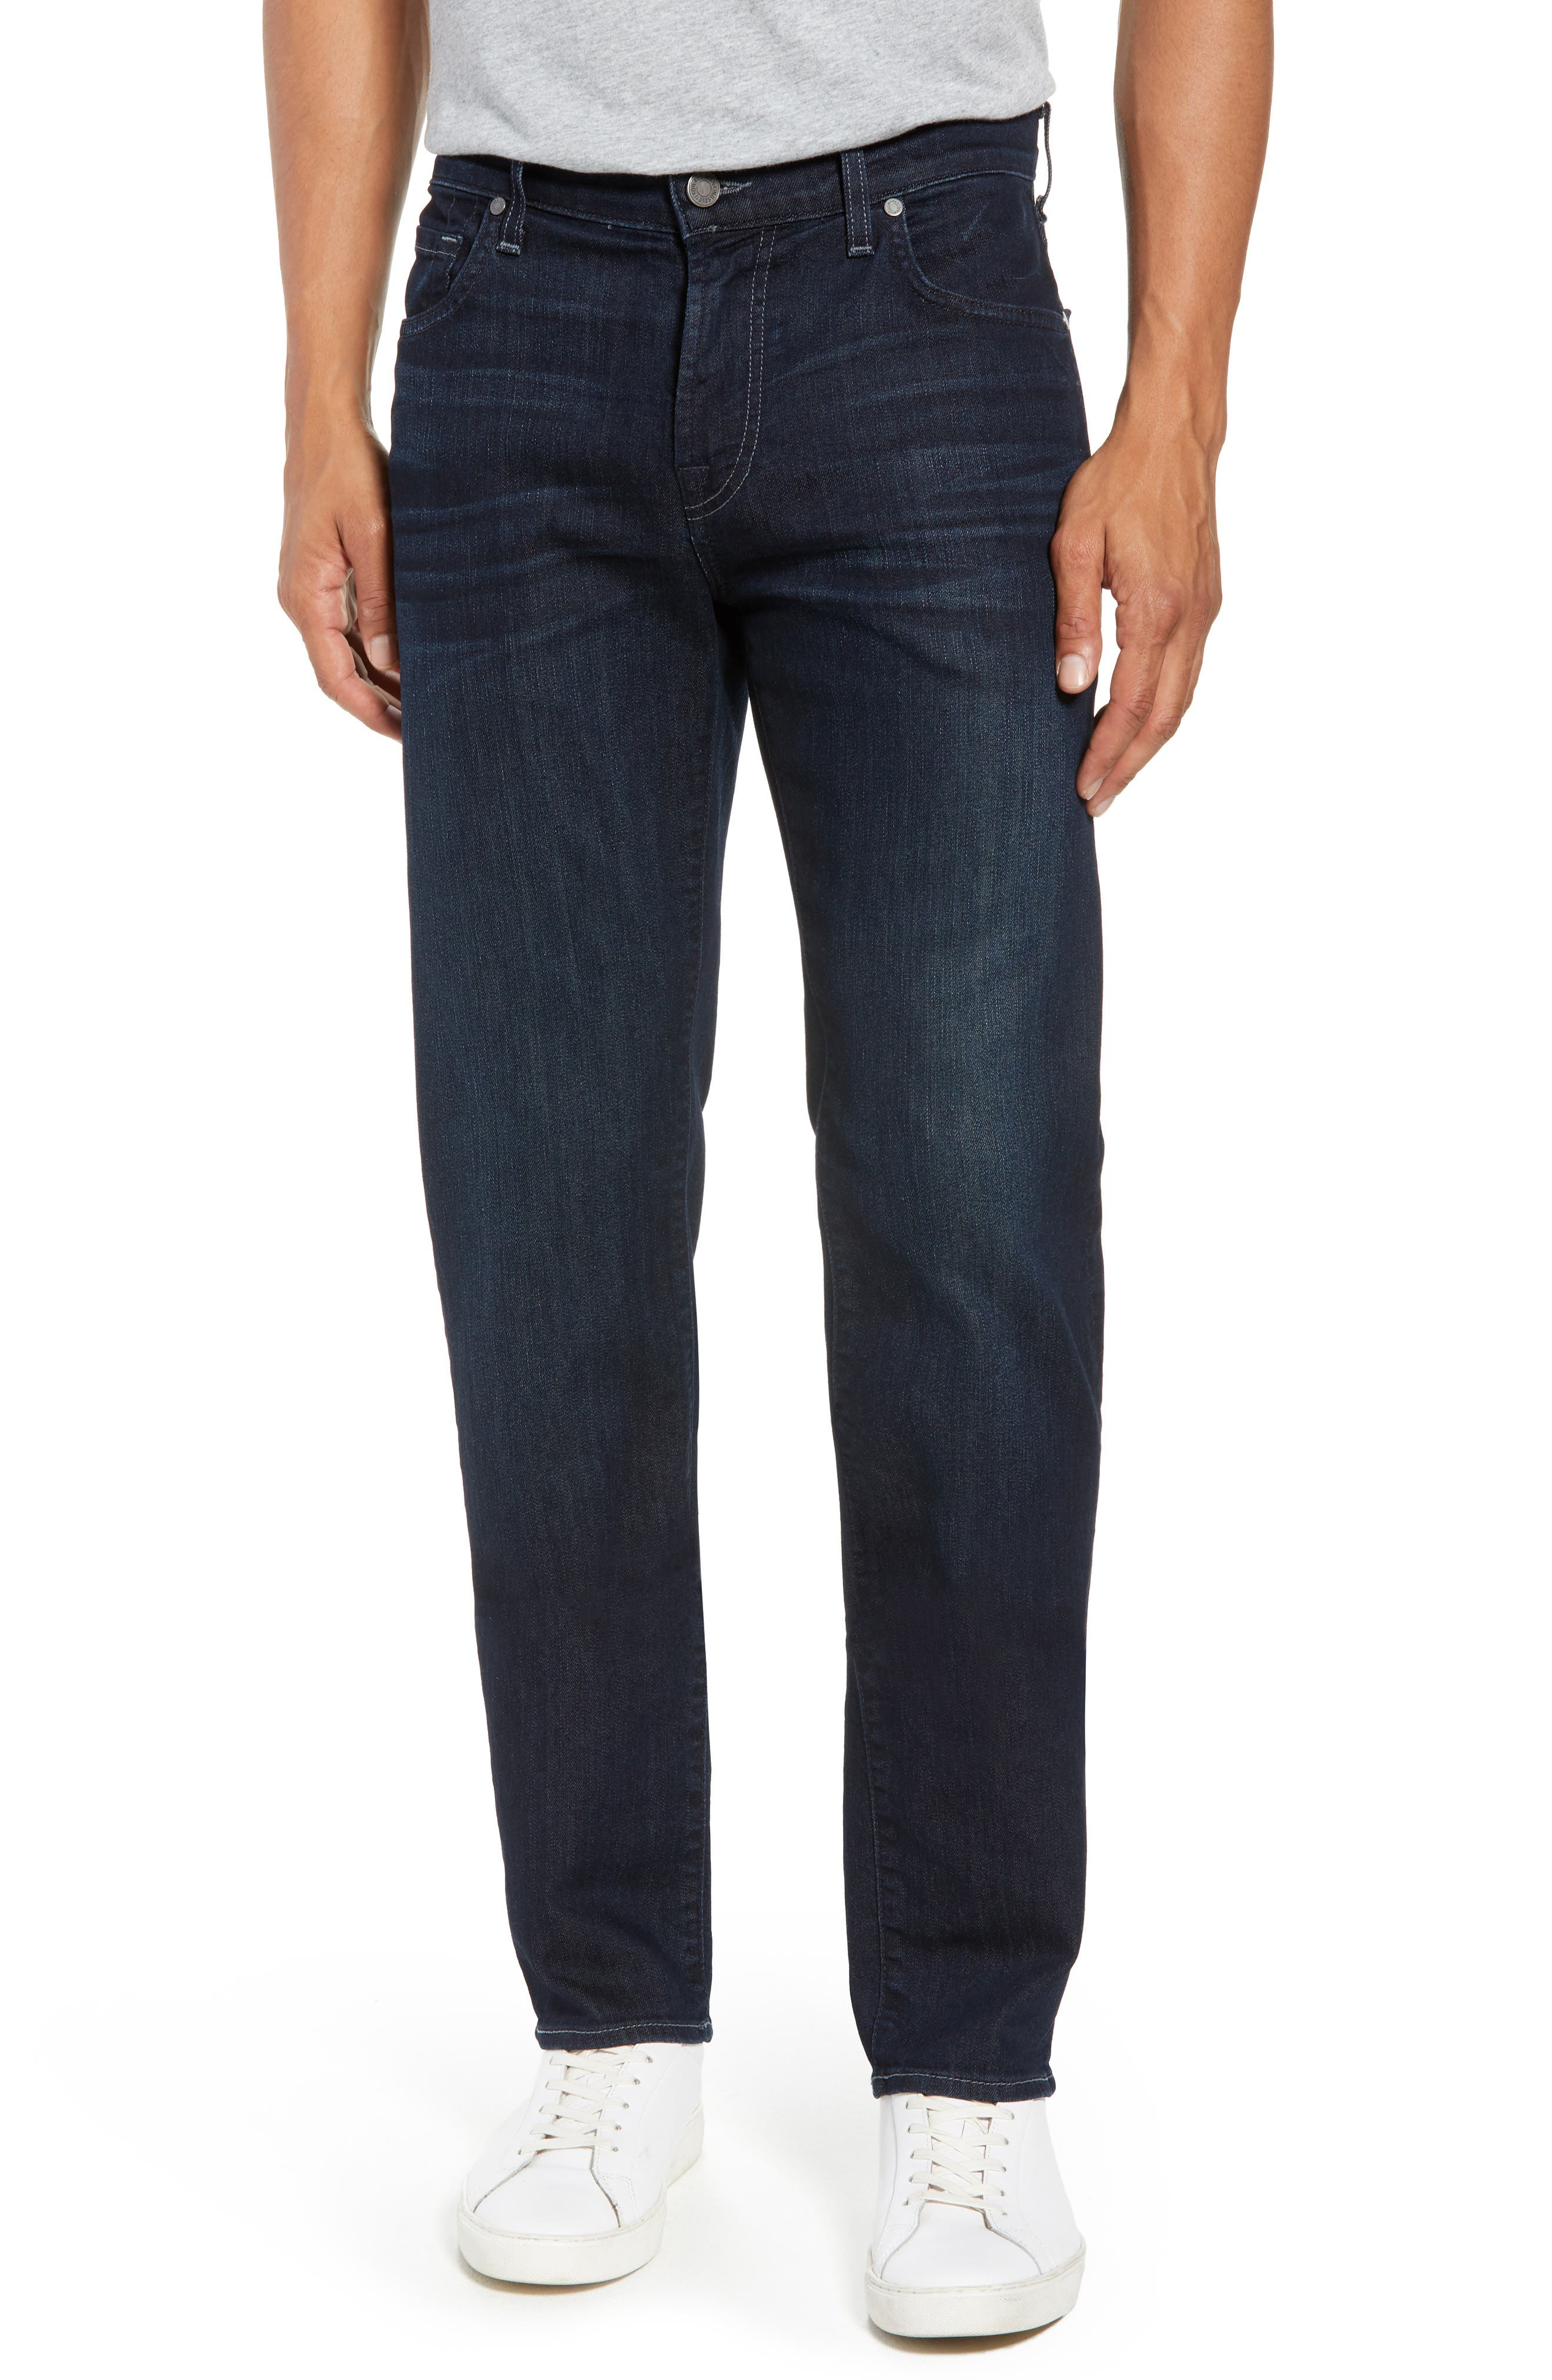 7 FOR ALL MANKIND<SUP>®</SUP>, Airweft Standard Straight Leg Jeans, Main thumbnail 1, color, 401